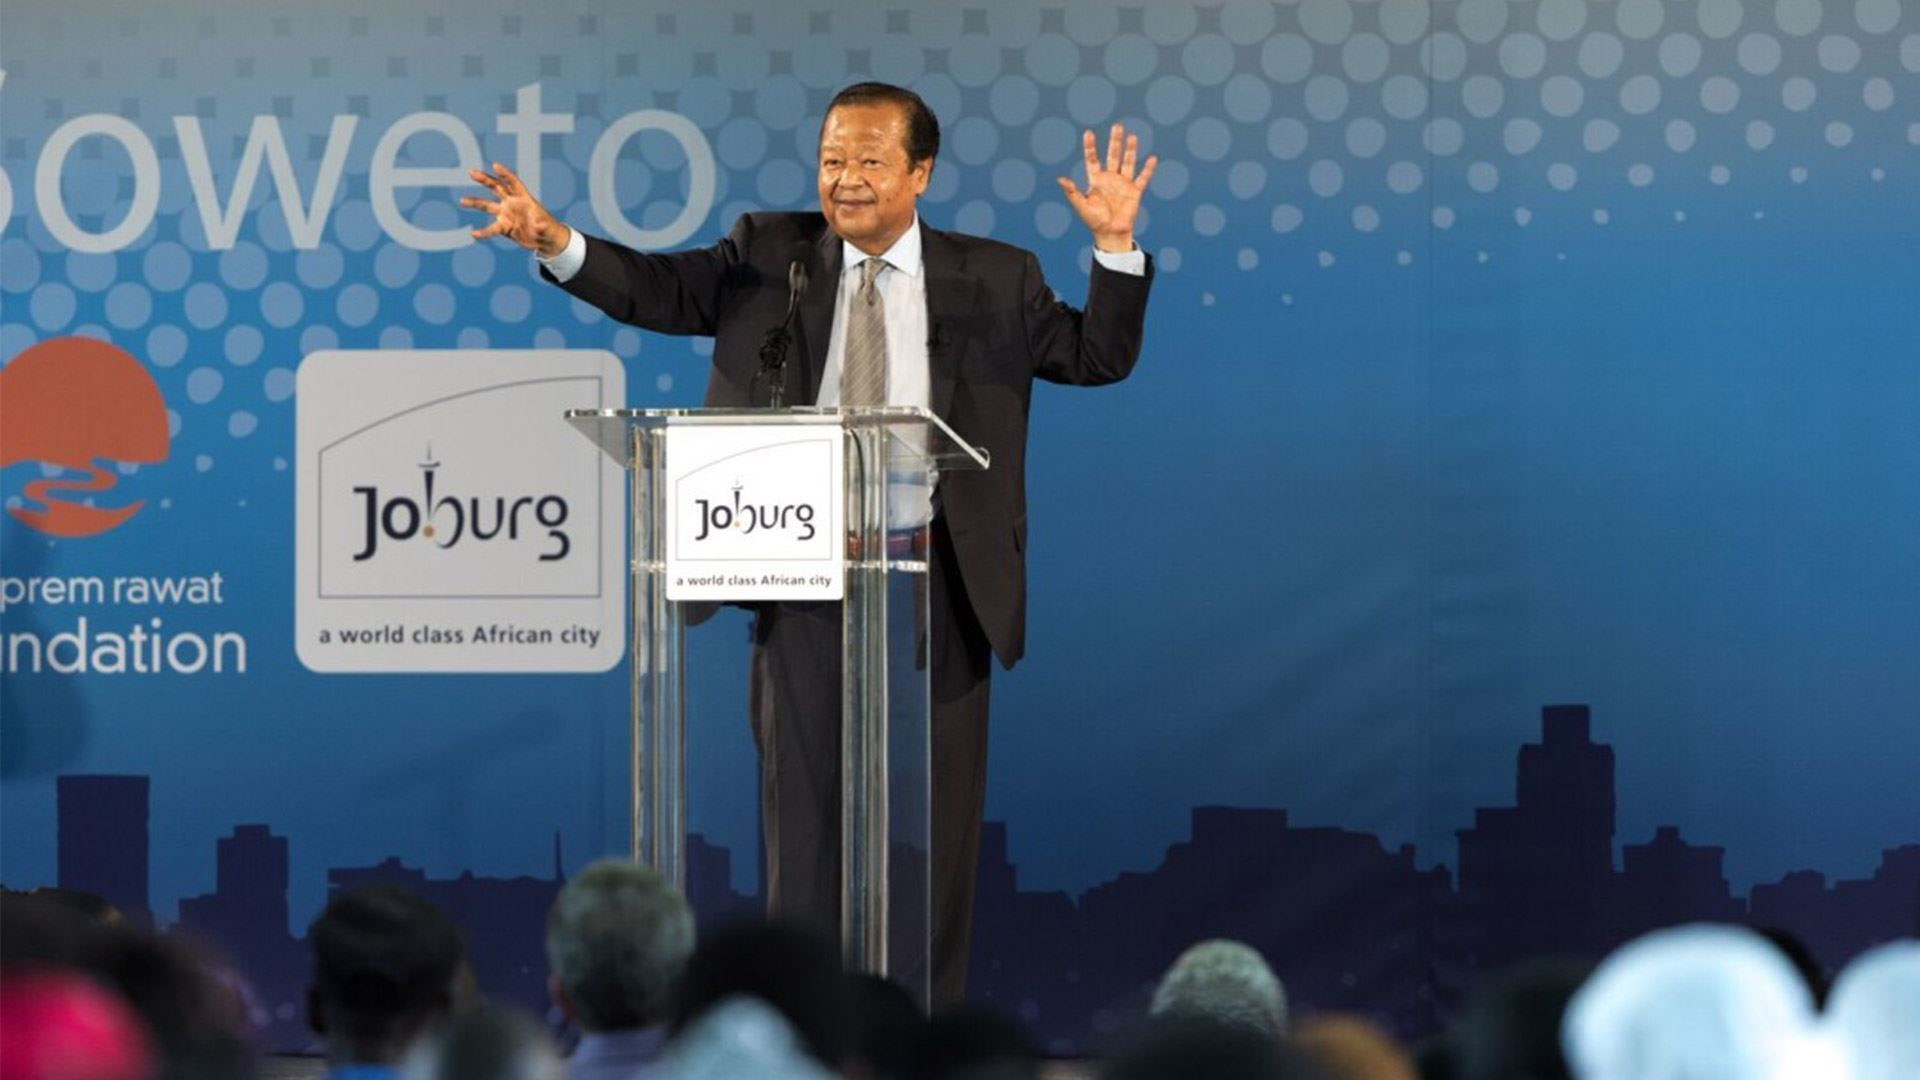 Prem Rawat in South African News